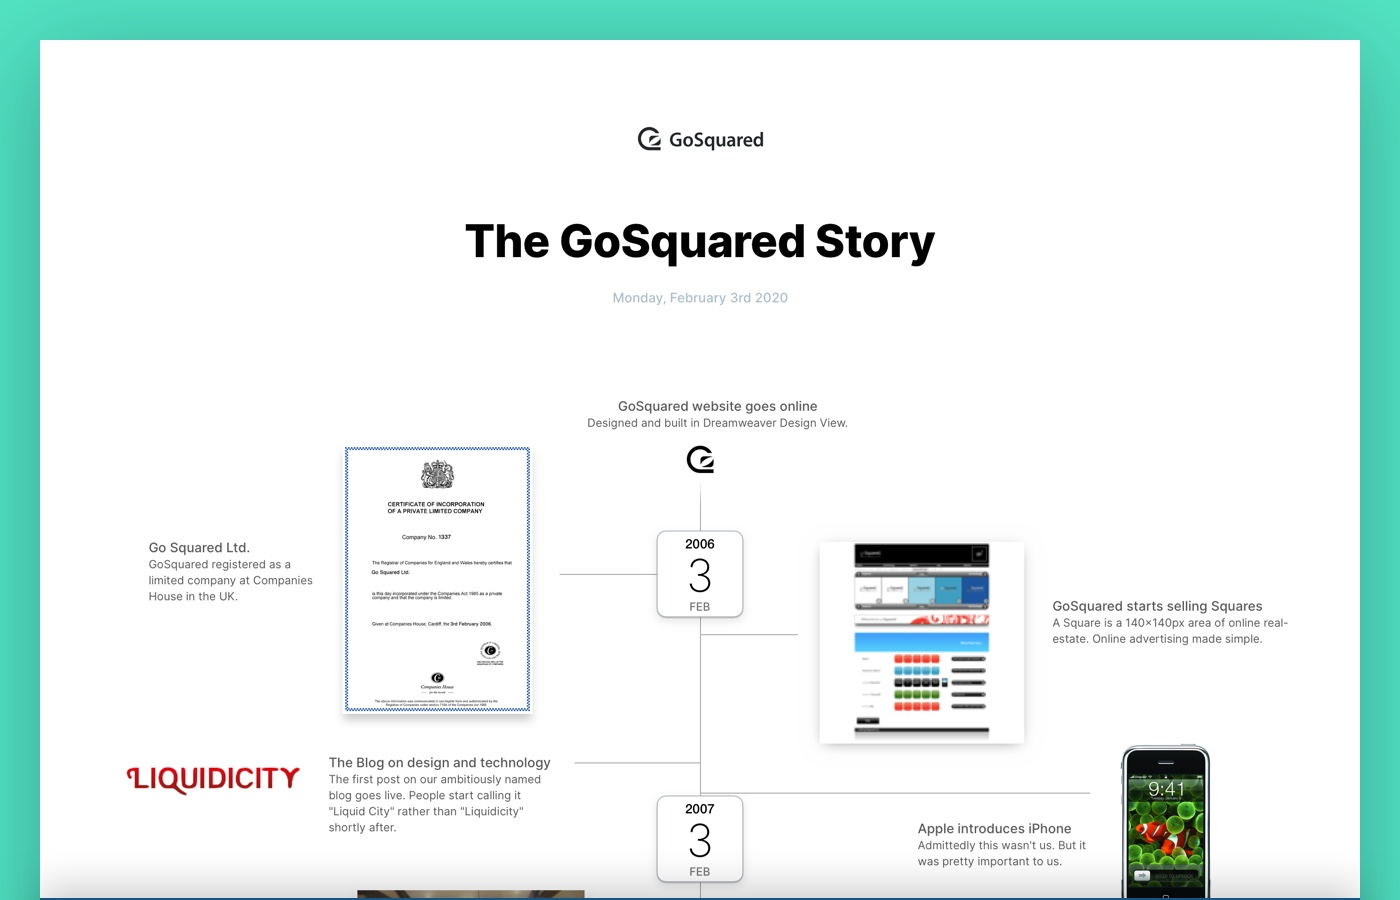 Preview of the GoSquared company timeline